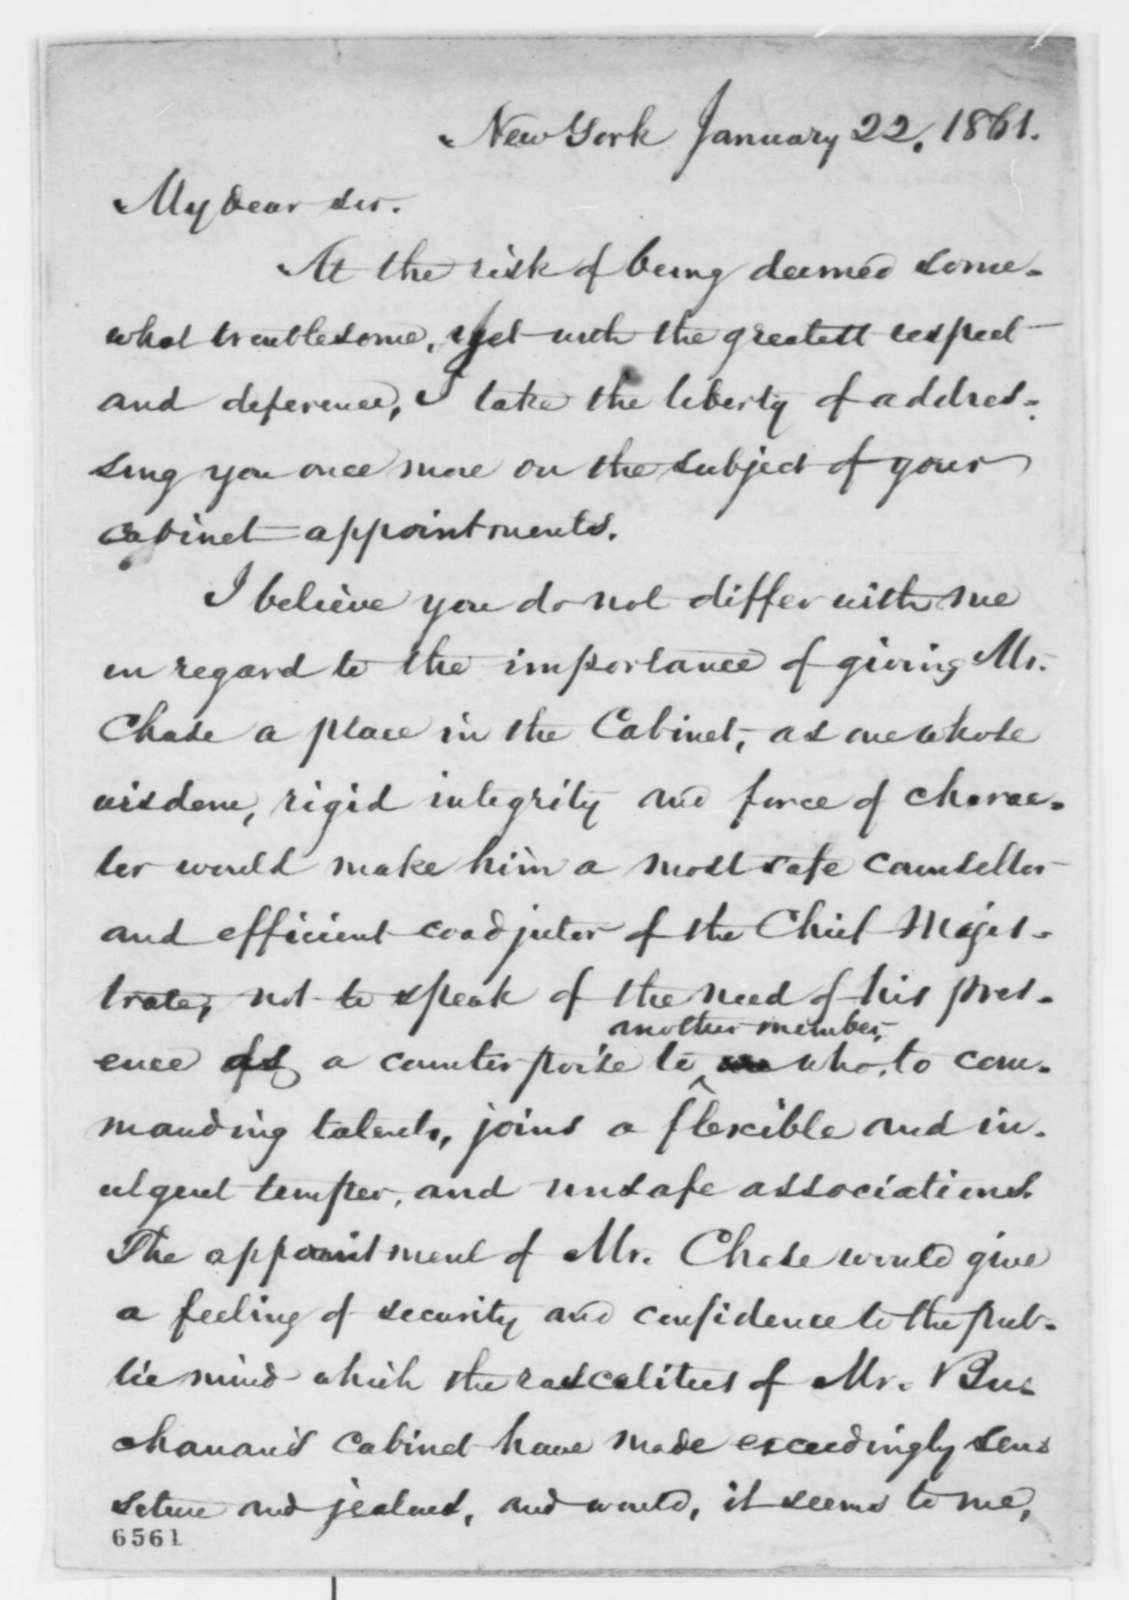 William Cullen Bryant to Abraham Lincoln, Tuesday, January 22, 1861  (Recommends Chase for cabinet)